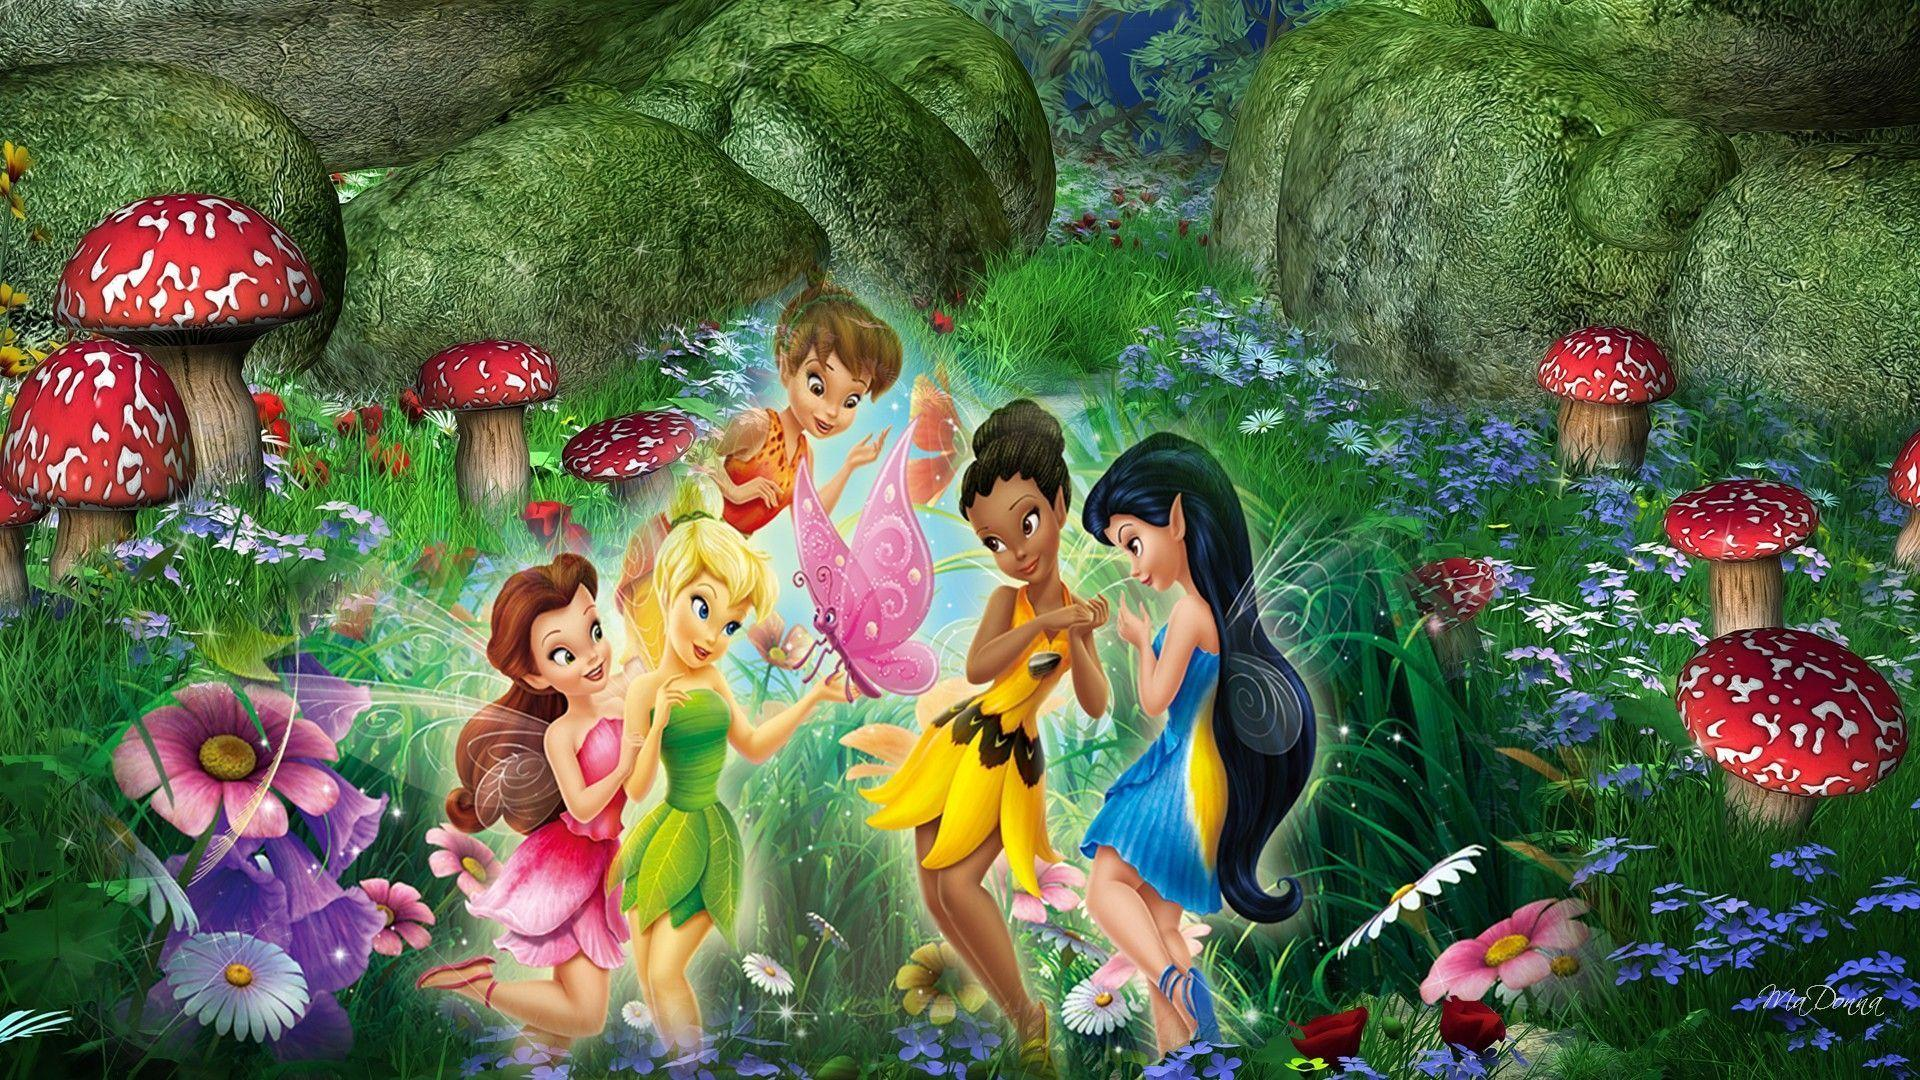 3d Mushroom Garden Wallpaper Download Disney Fairies Wallpapers Wallpaper Cave